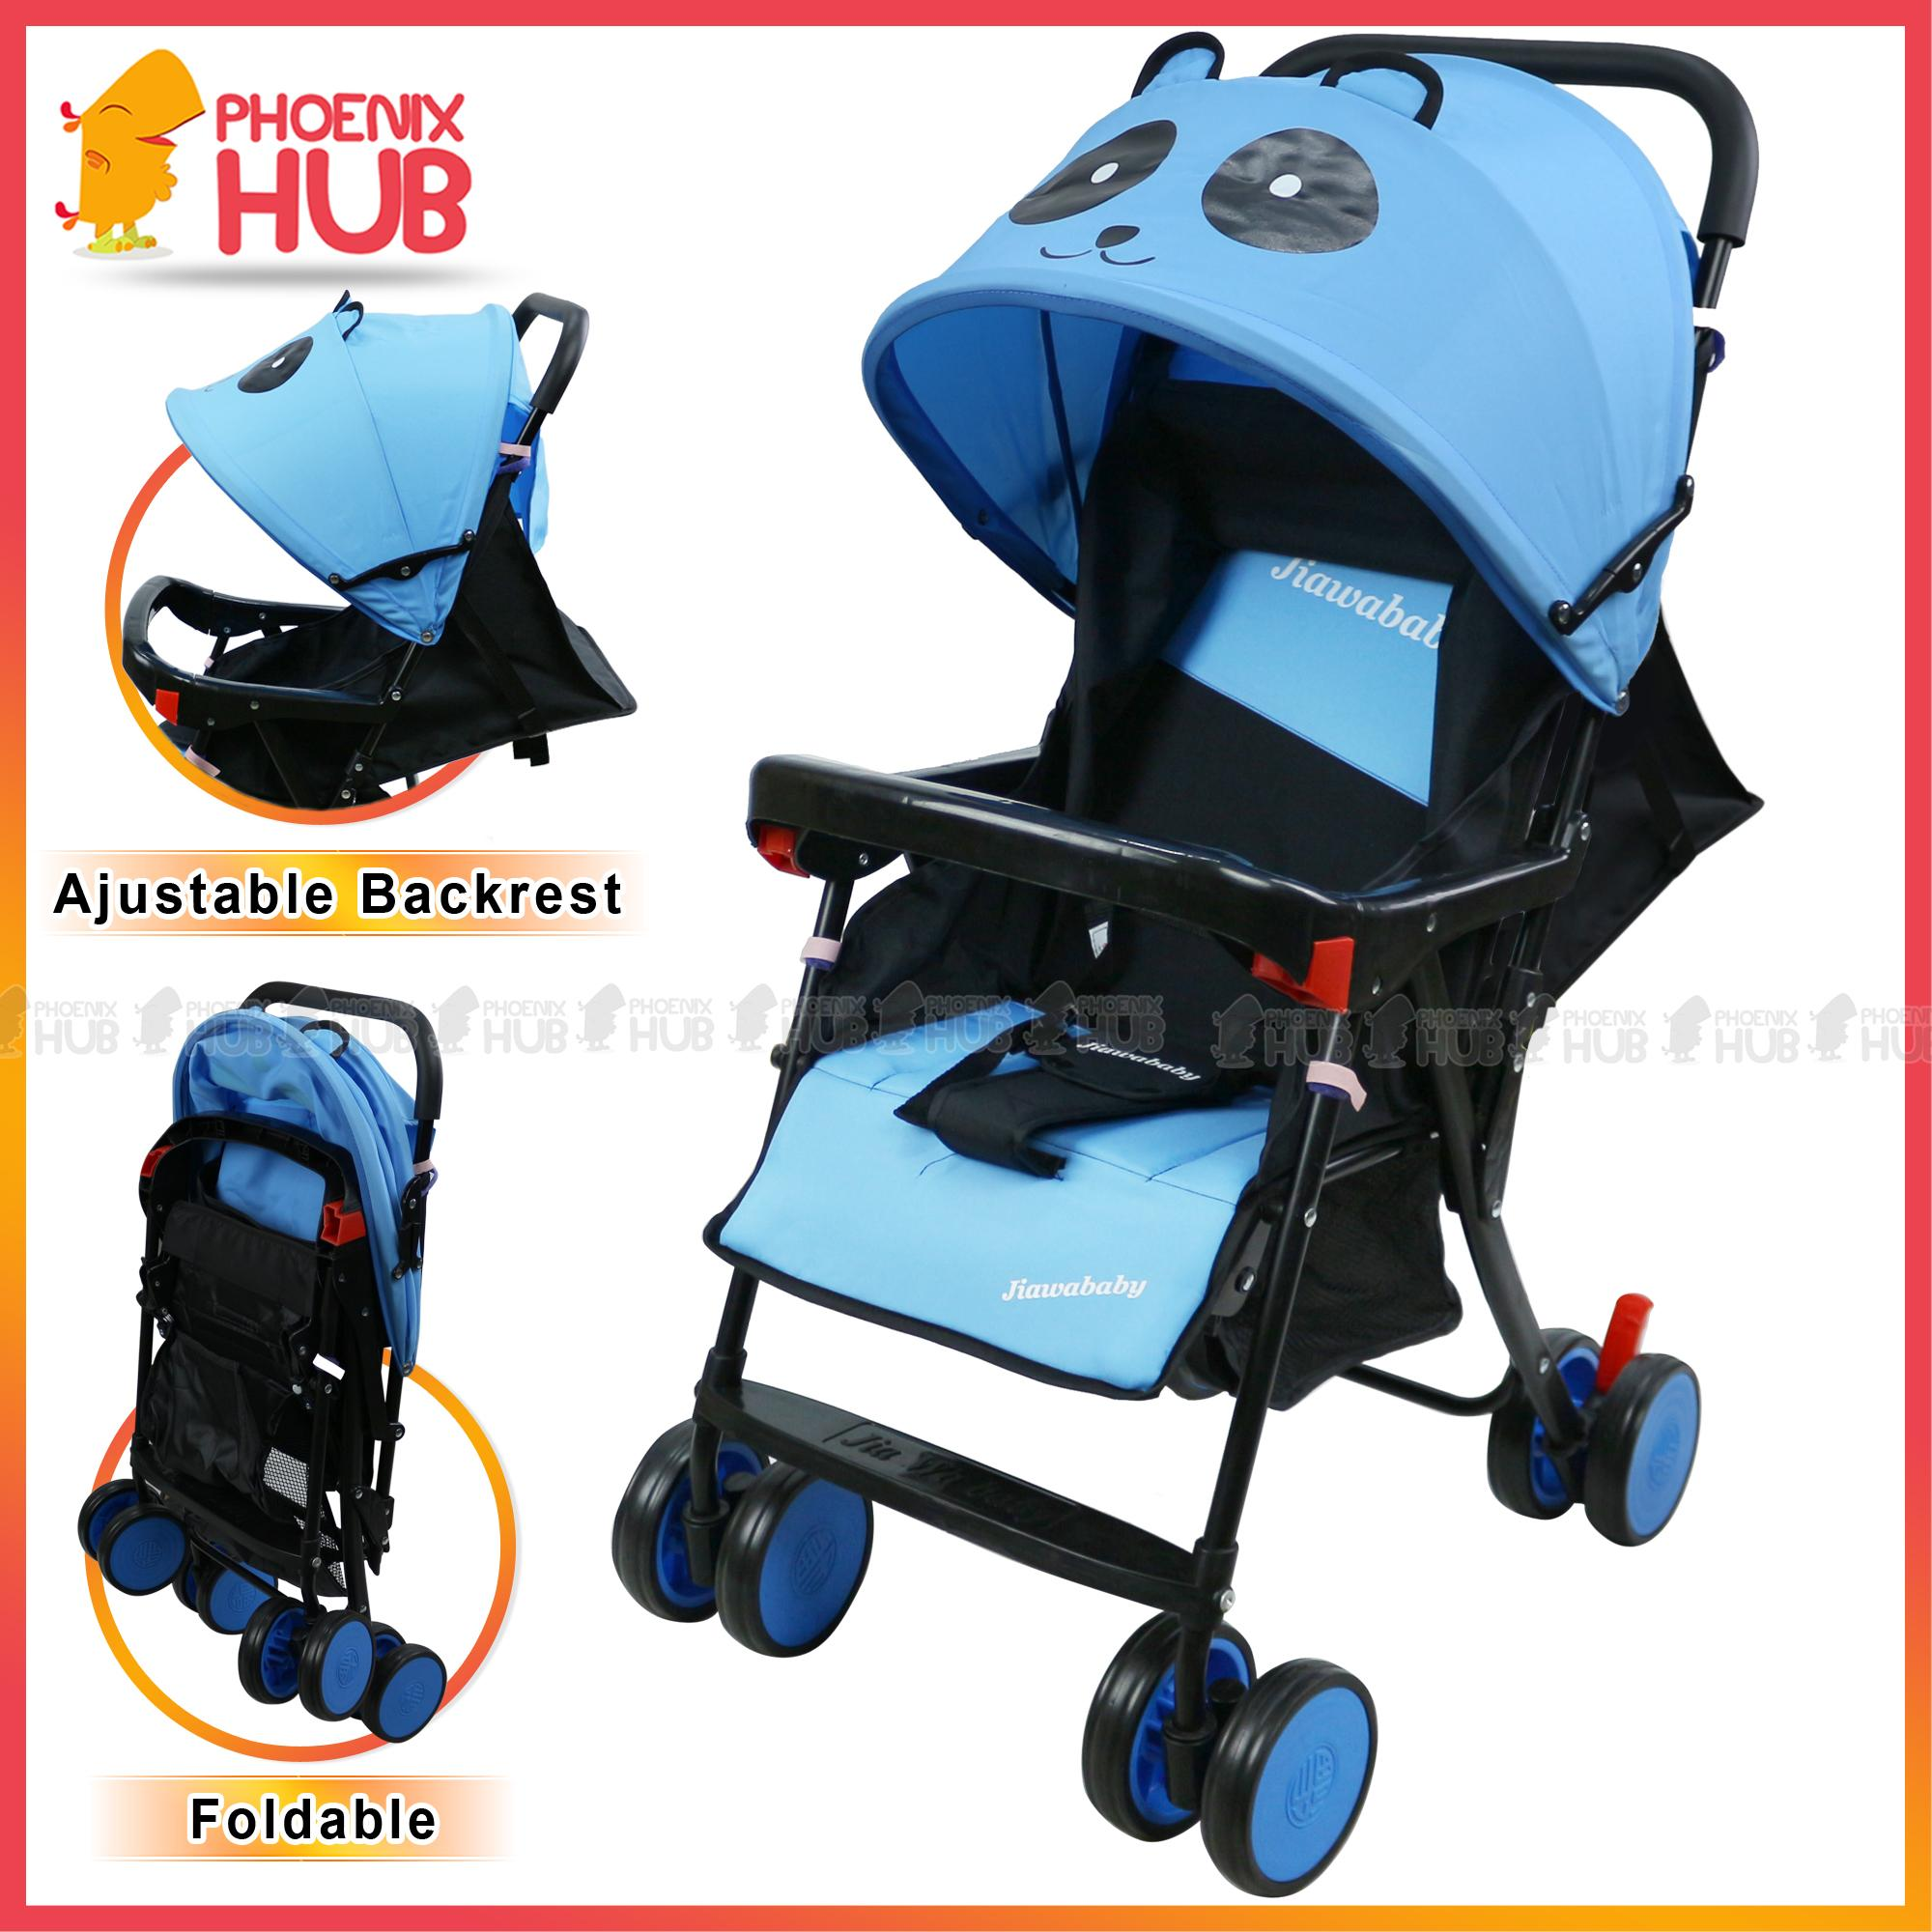 Phoenix Hub Jw 772 Baby Stroller Travel System Super Lightweight Stroller Foldable Stroller Push Chair Portable Stroller